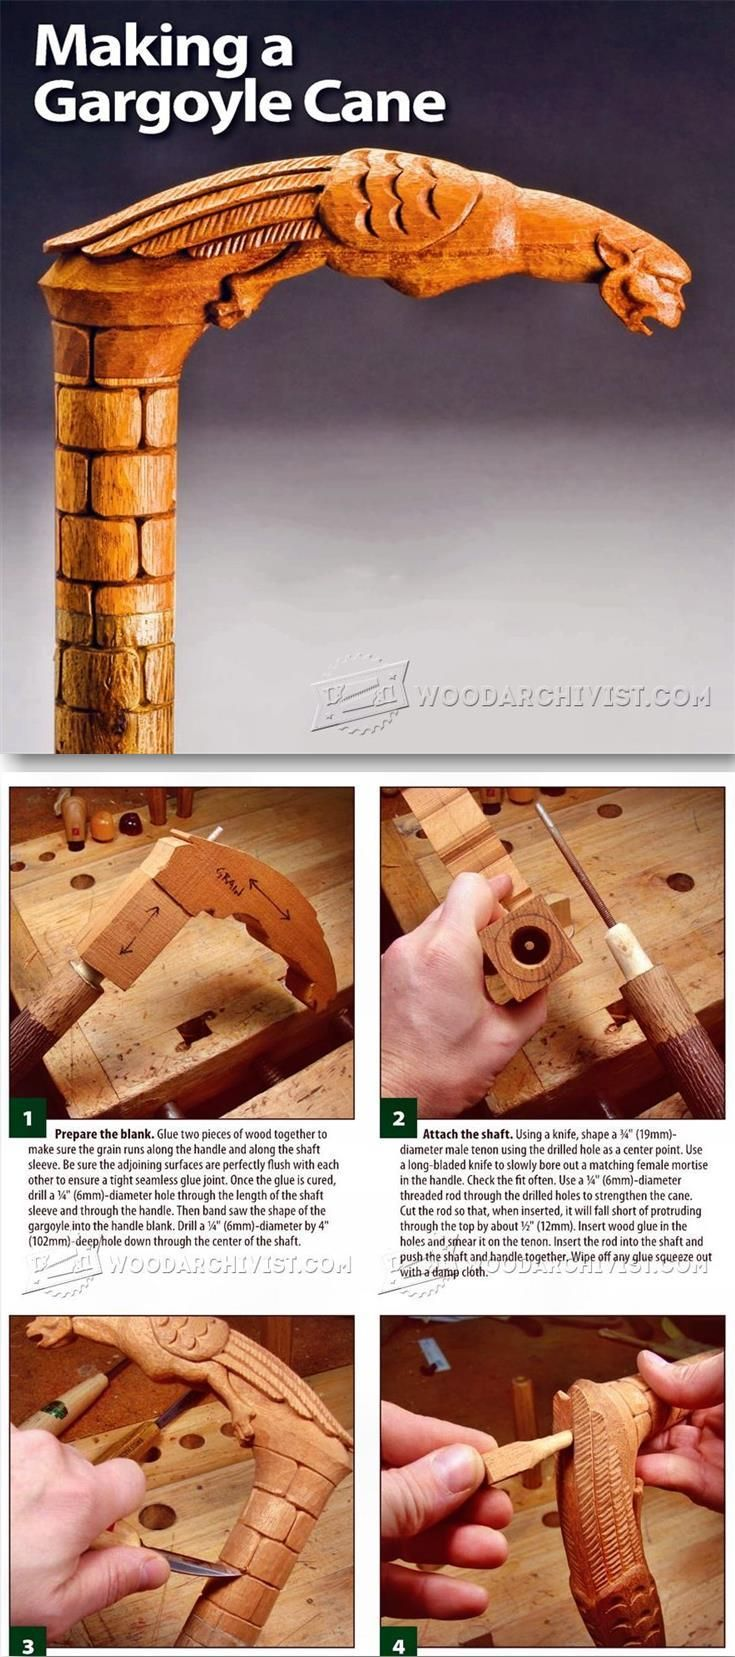 Carving Cane - Wood Carving Patterns and Techniques | WoodArchivist.com